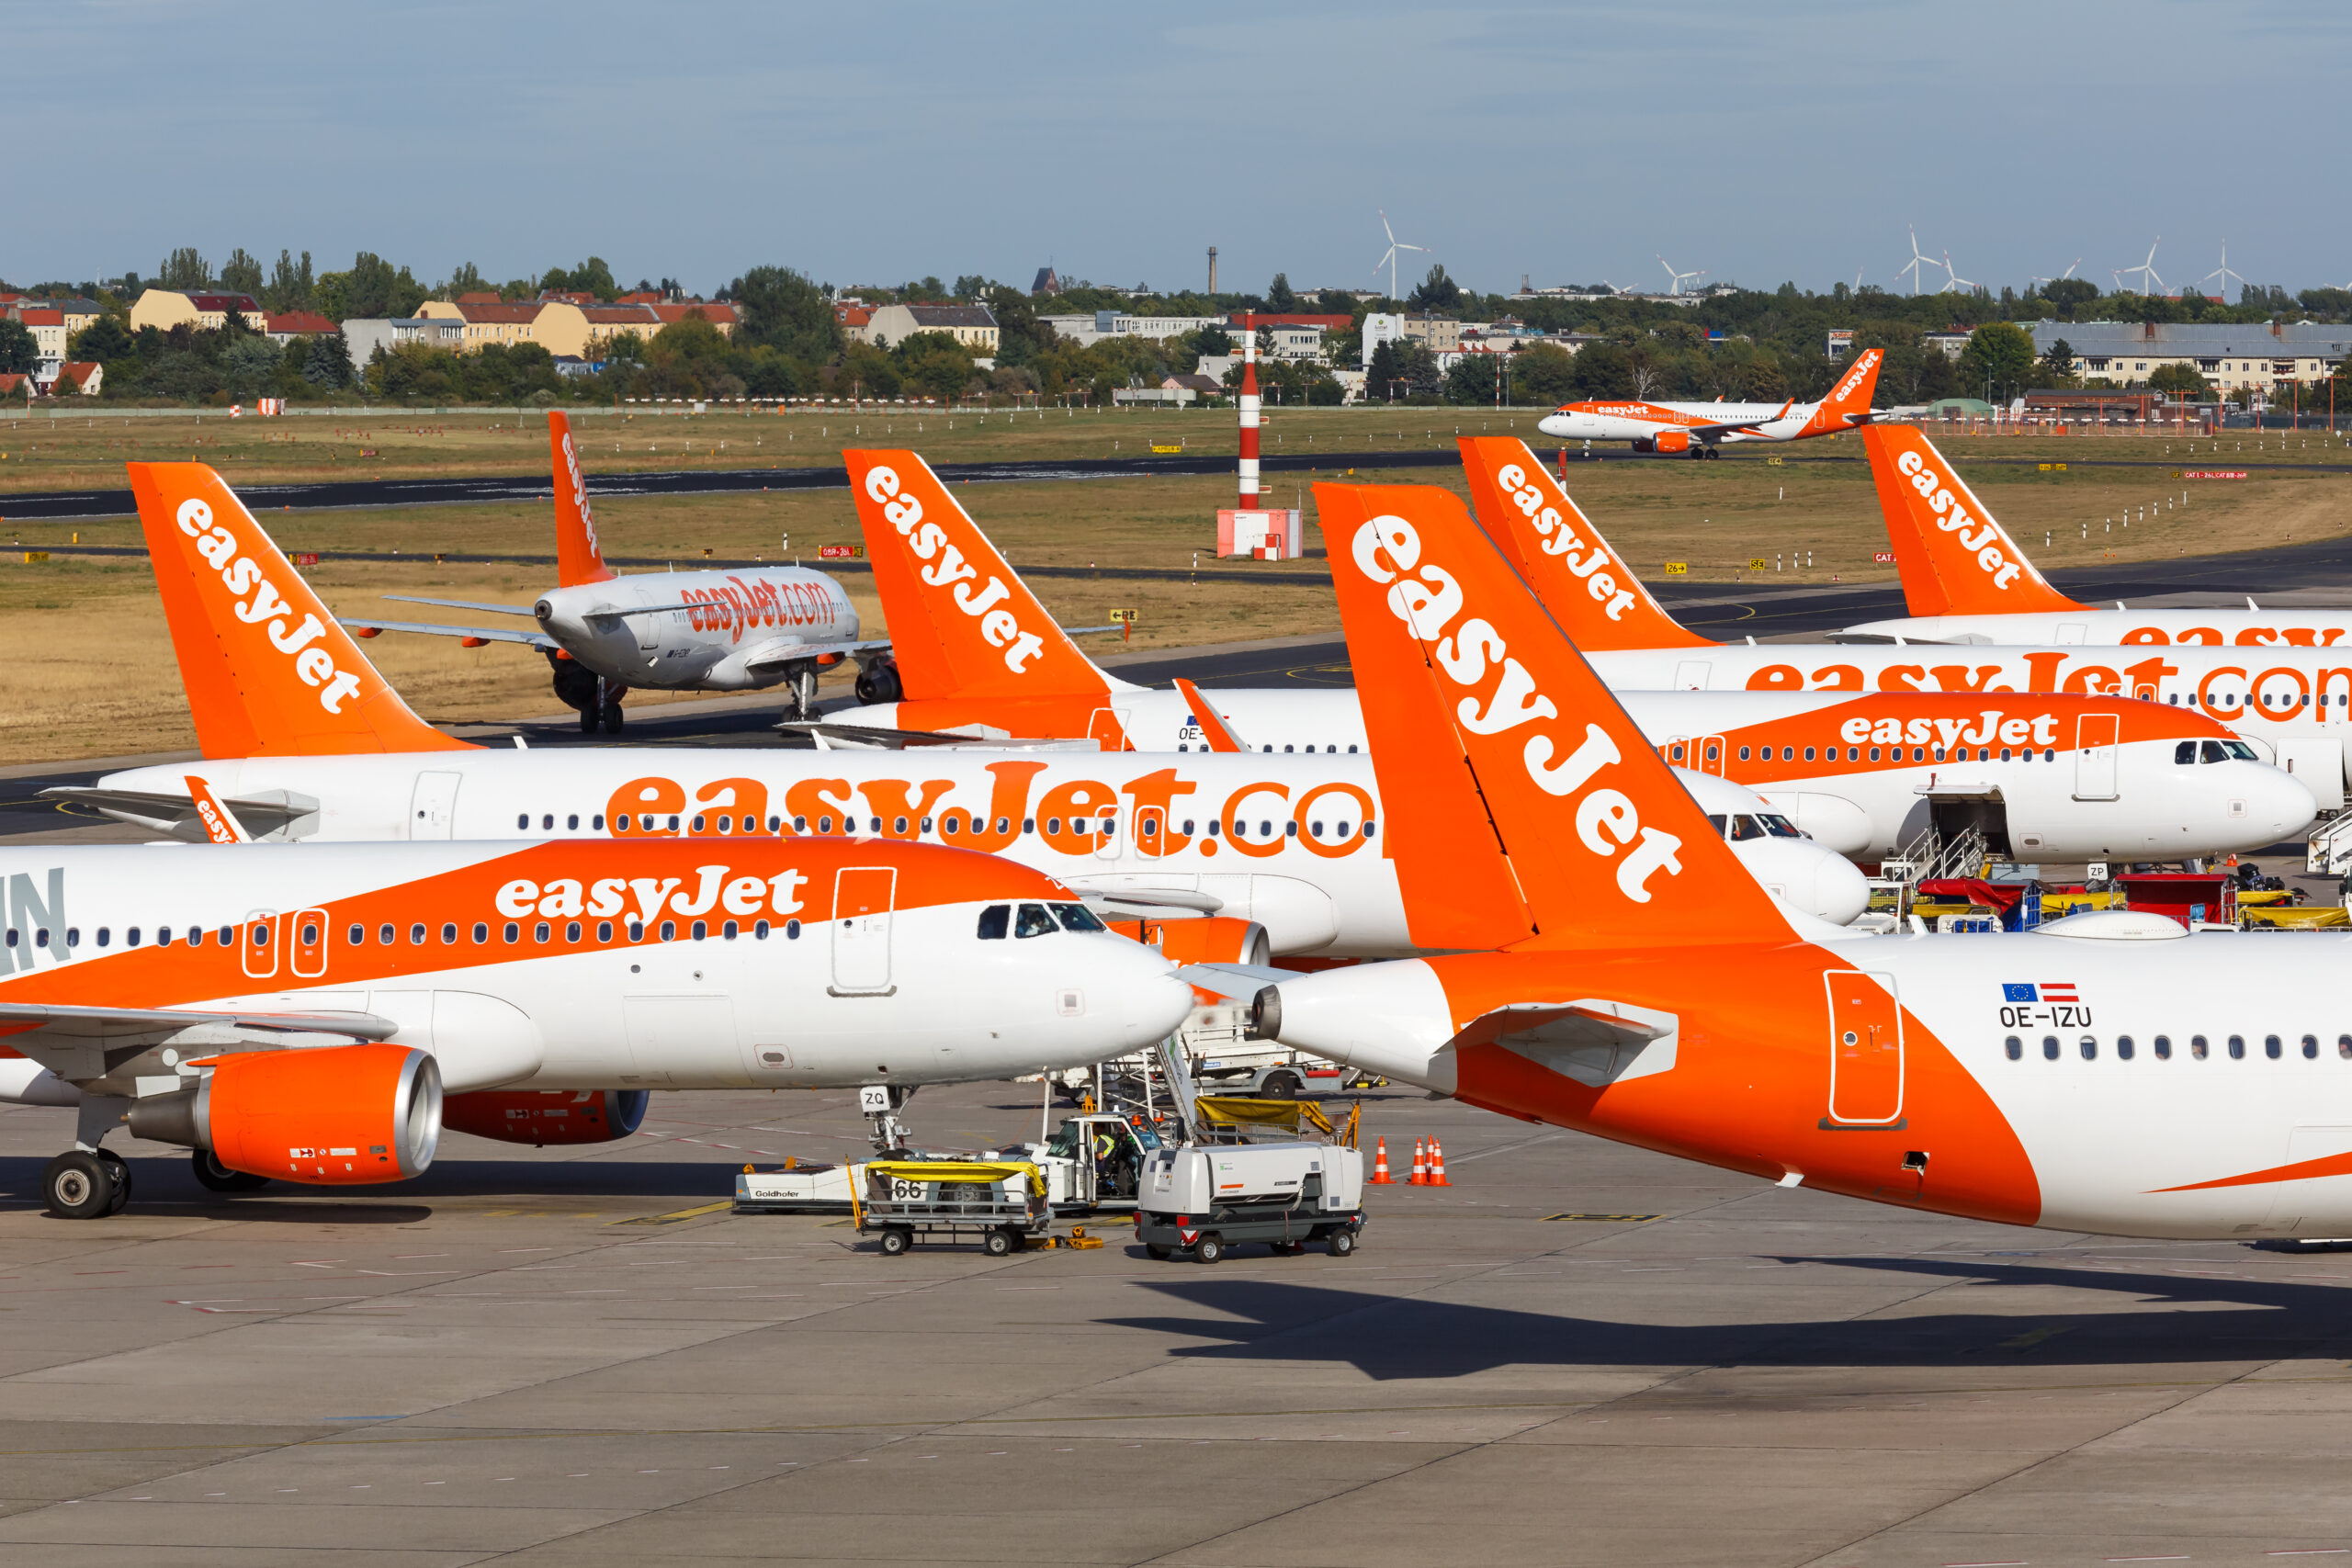 EasyJet Airbus A320 airplanes at Berlin Tegel Airport (TXL) in Germany. Airbus is a European aircraft manufacturer based in Toulouse, France.